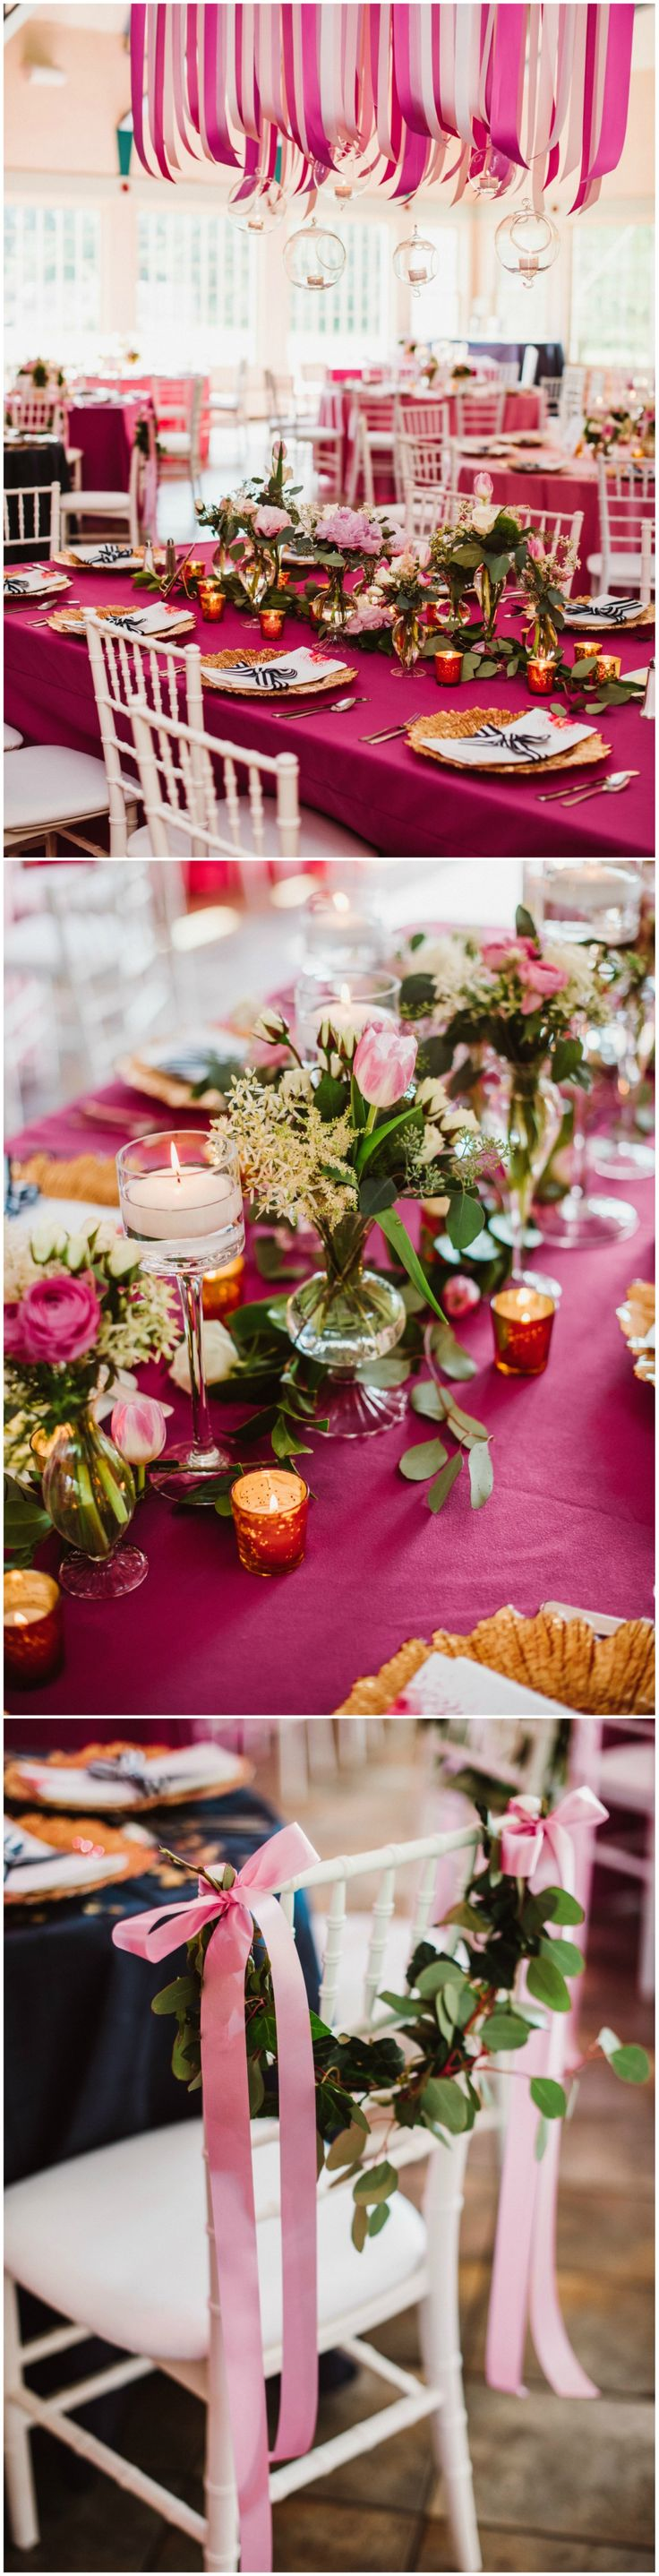 Pink wedding reception, suspended pink silk ribbons, pink tablecloths, loose leaves, gold chargers, see the full wedding feature on borrowedandblue.com // Aster + Olive Photography